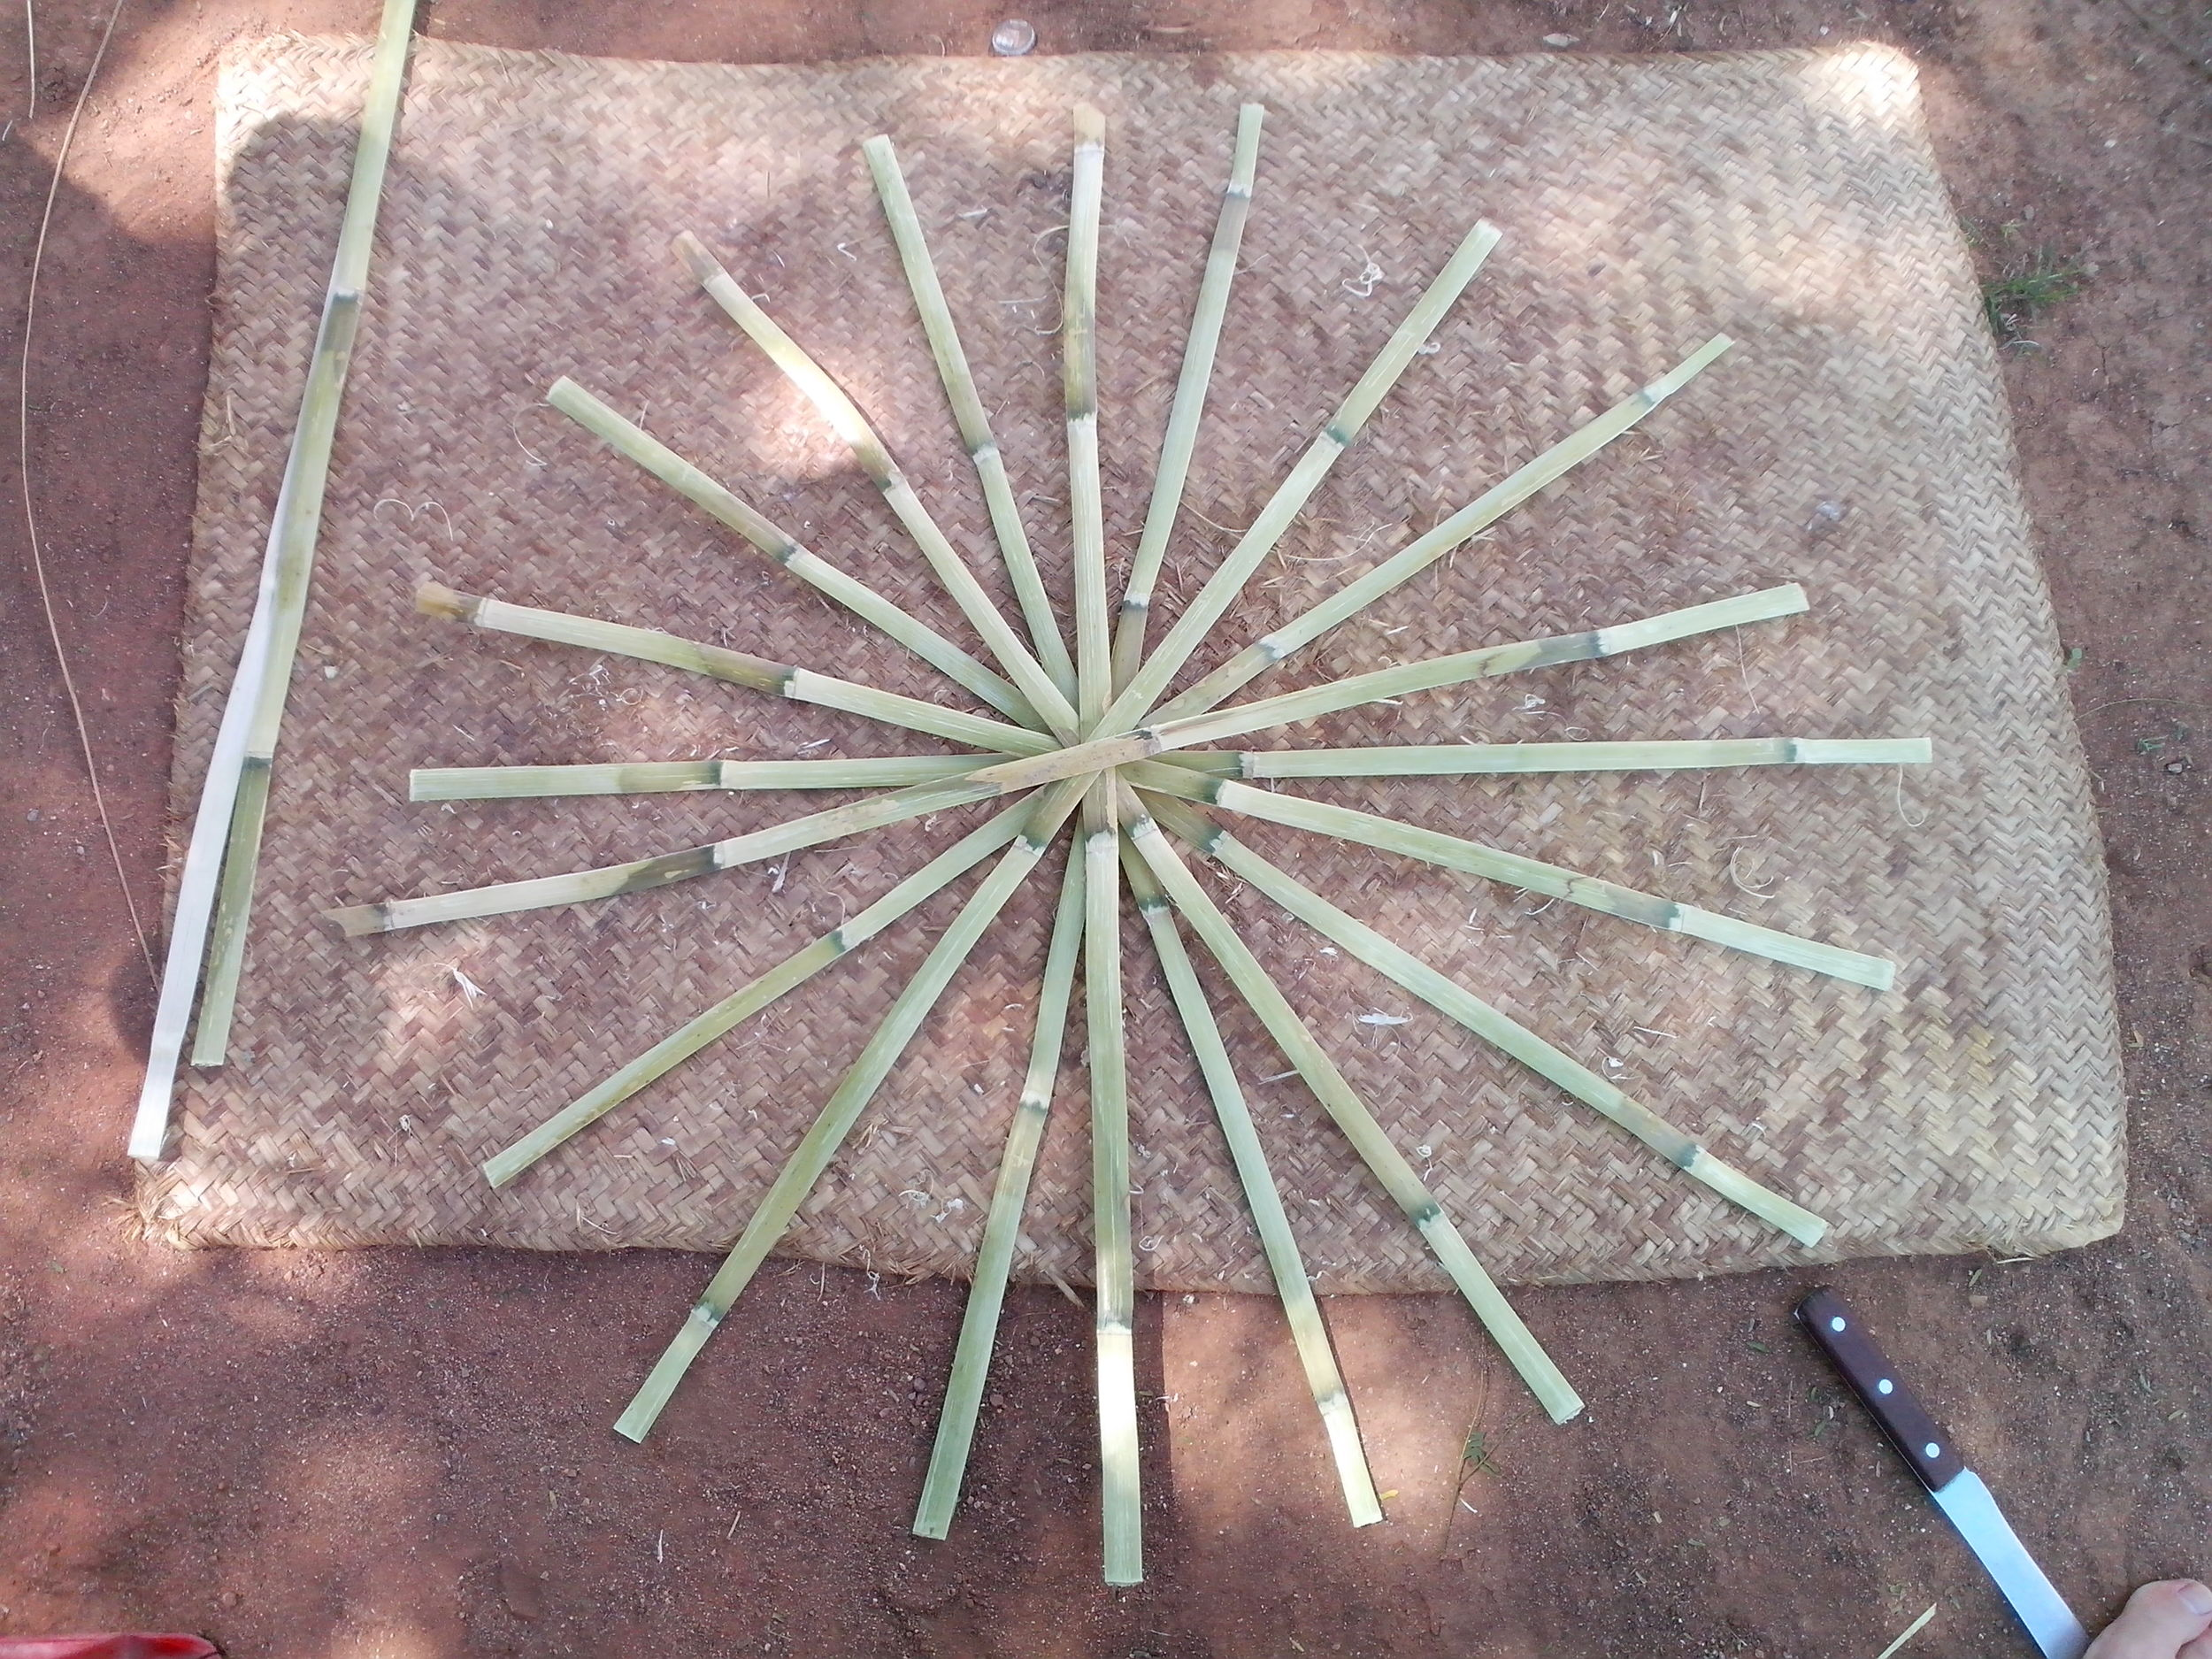 Basket base laid out